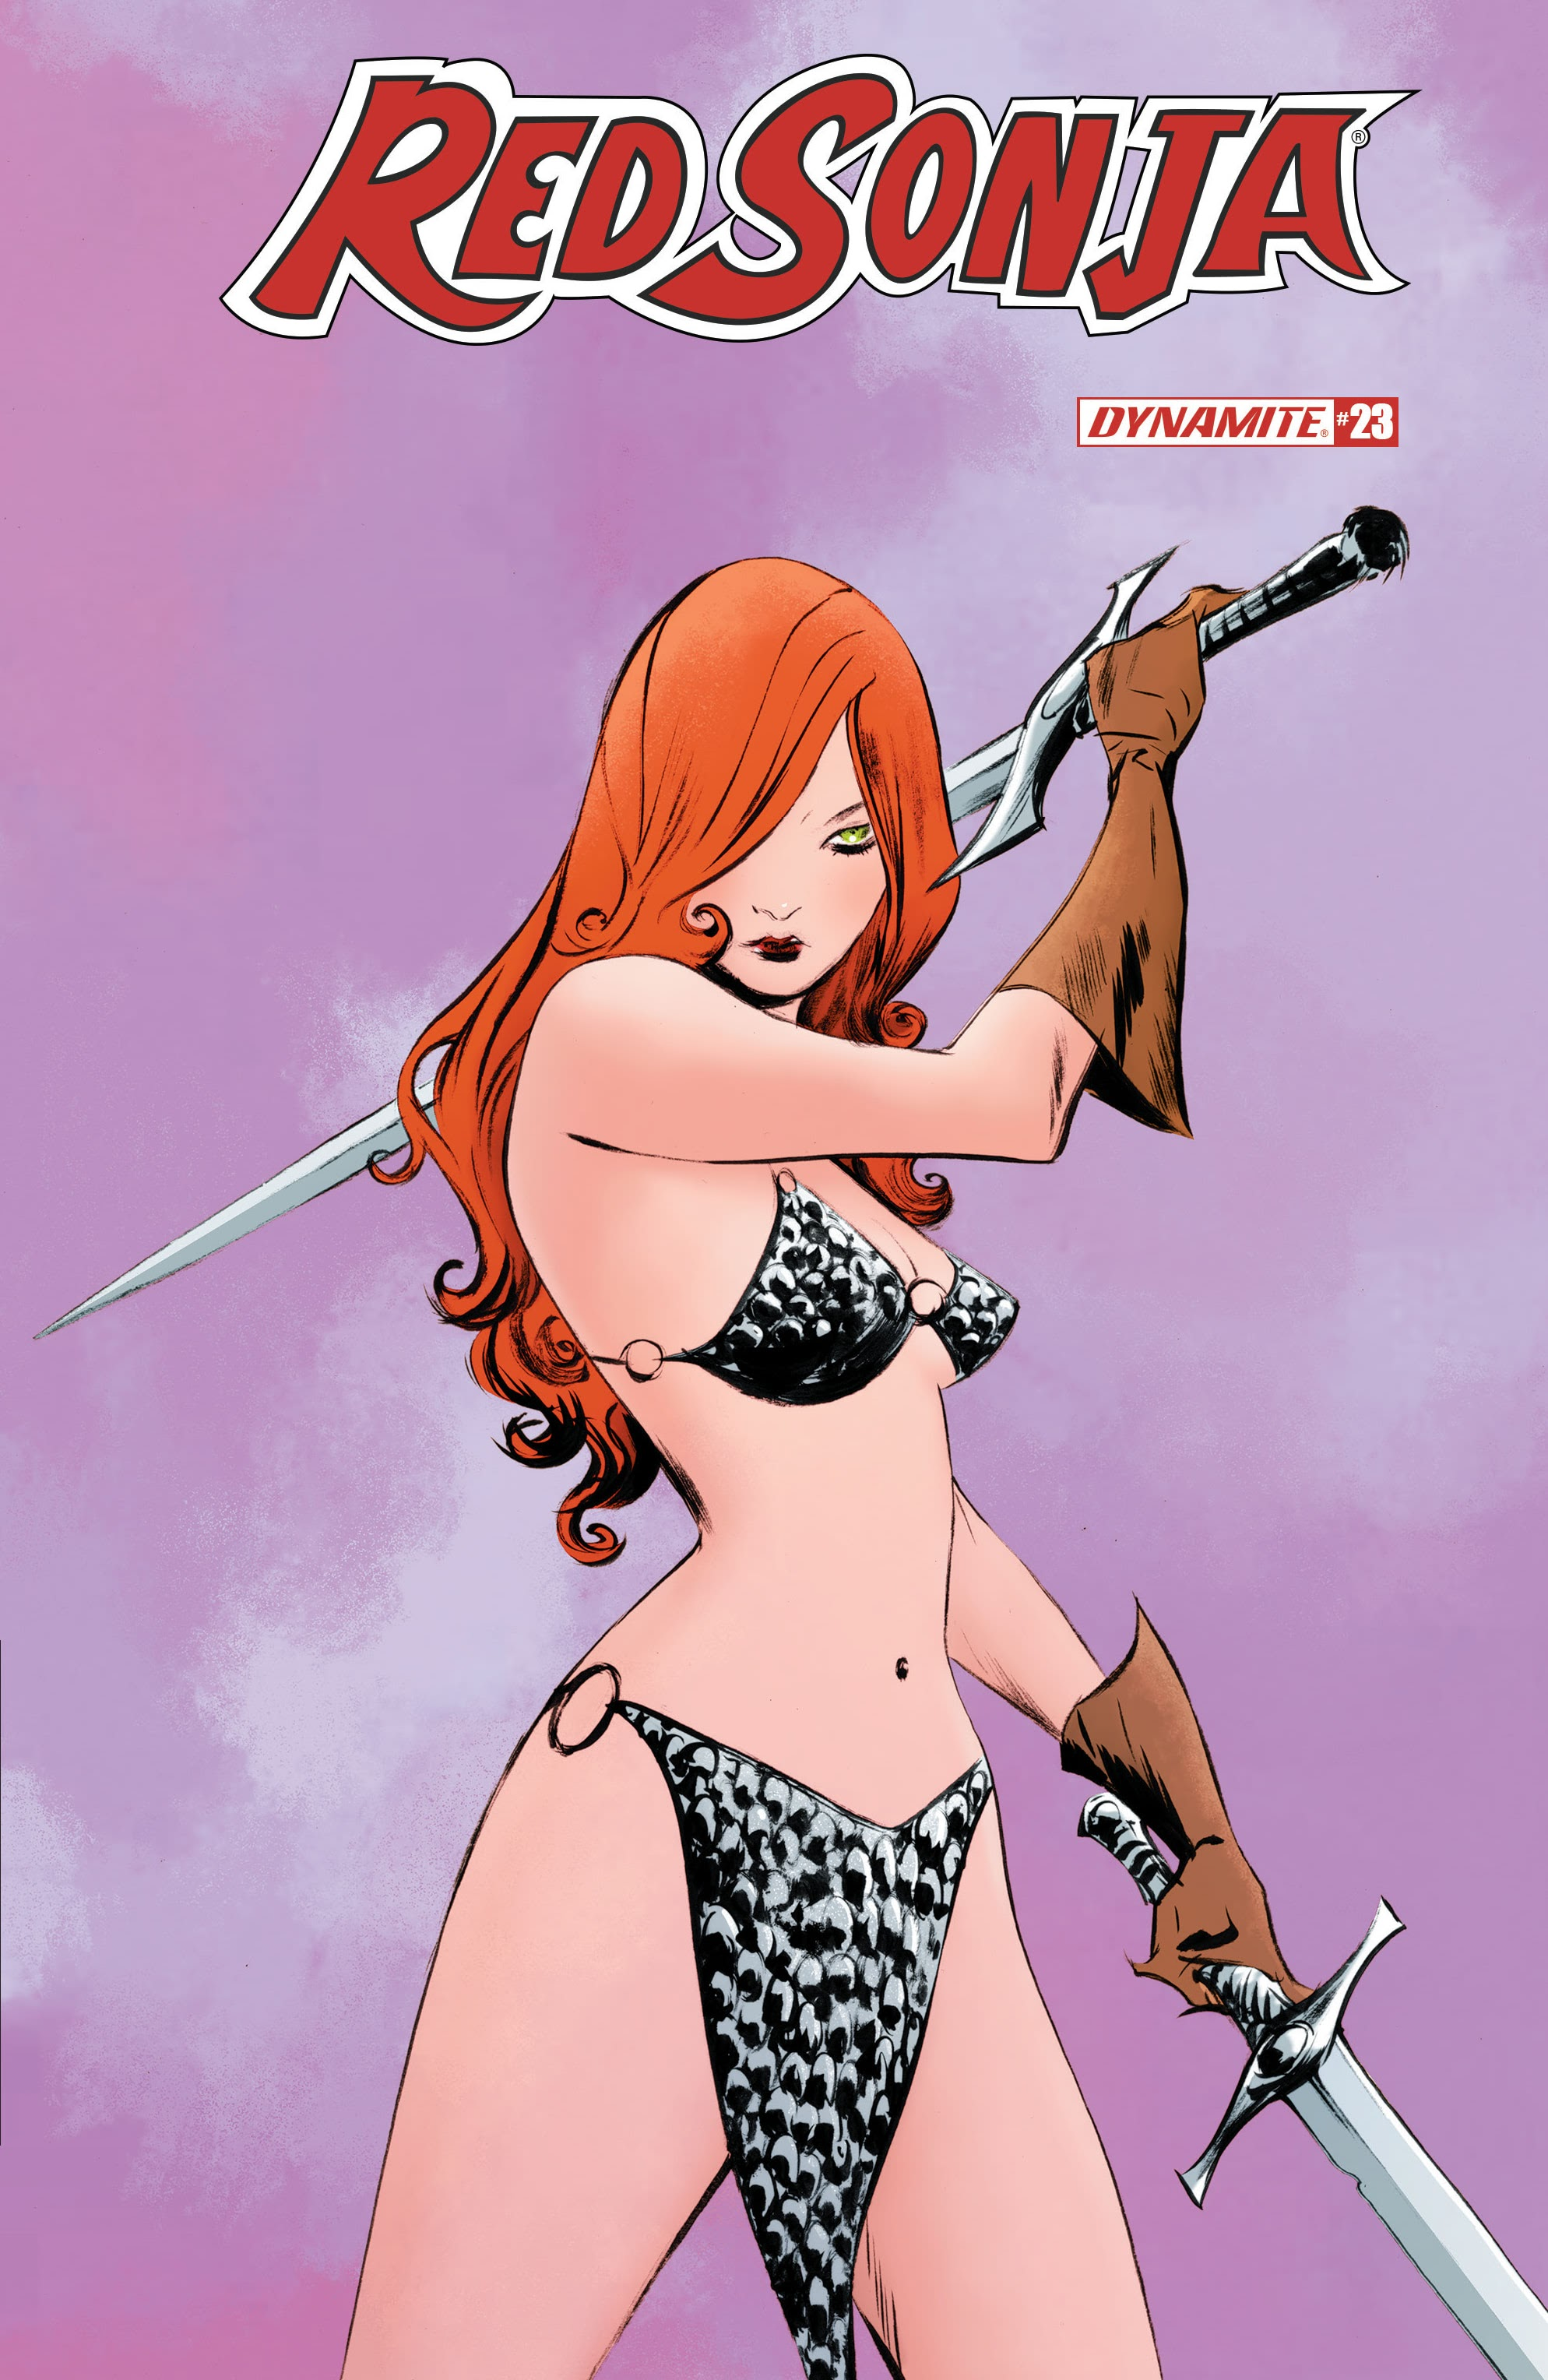 Red Sonja (2019) issue 23 - Page 1